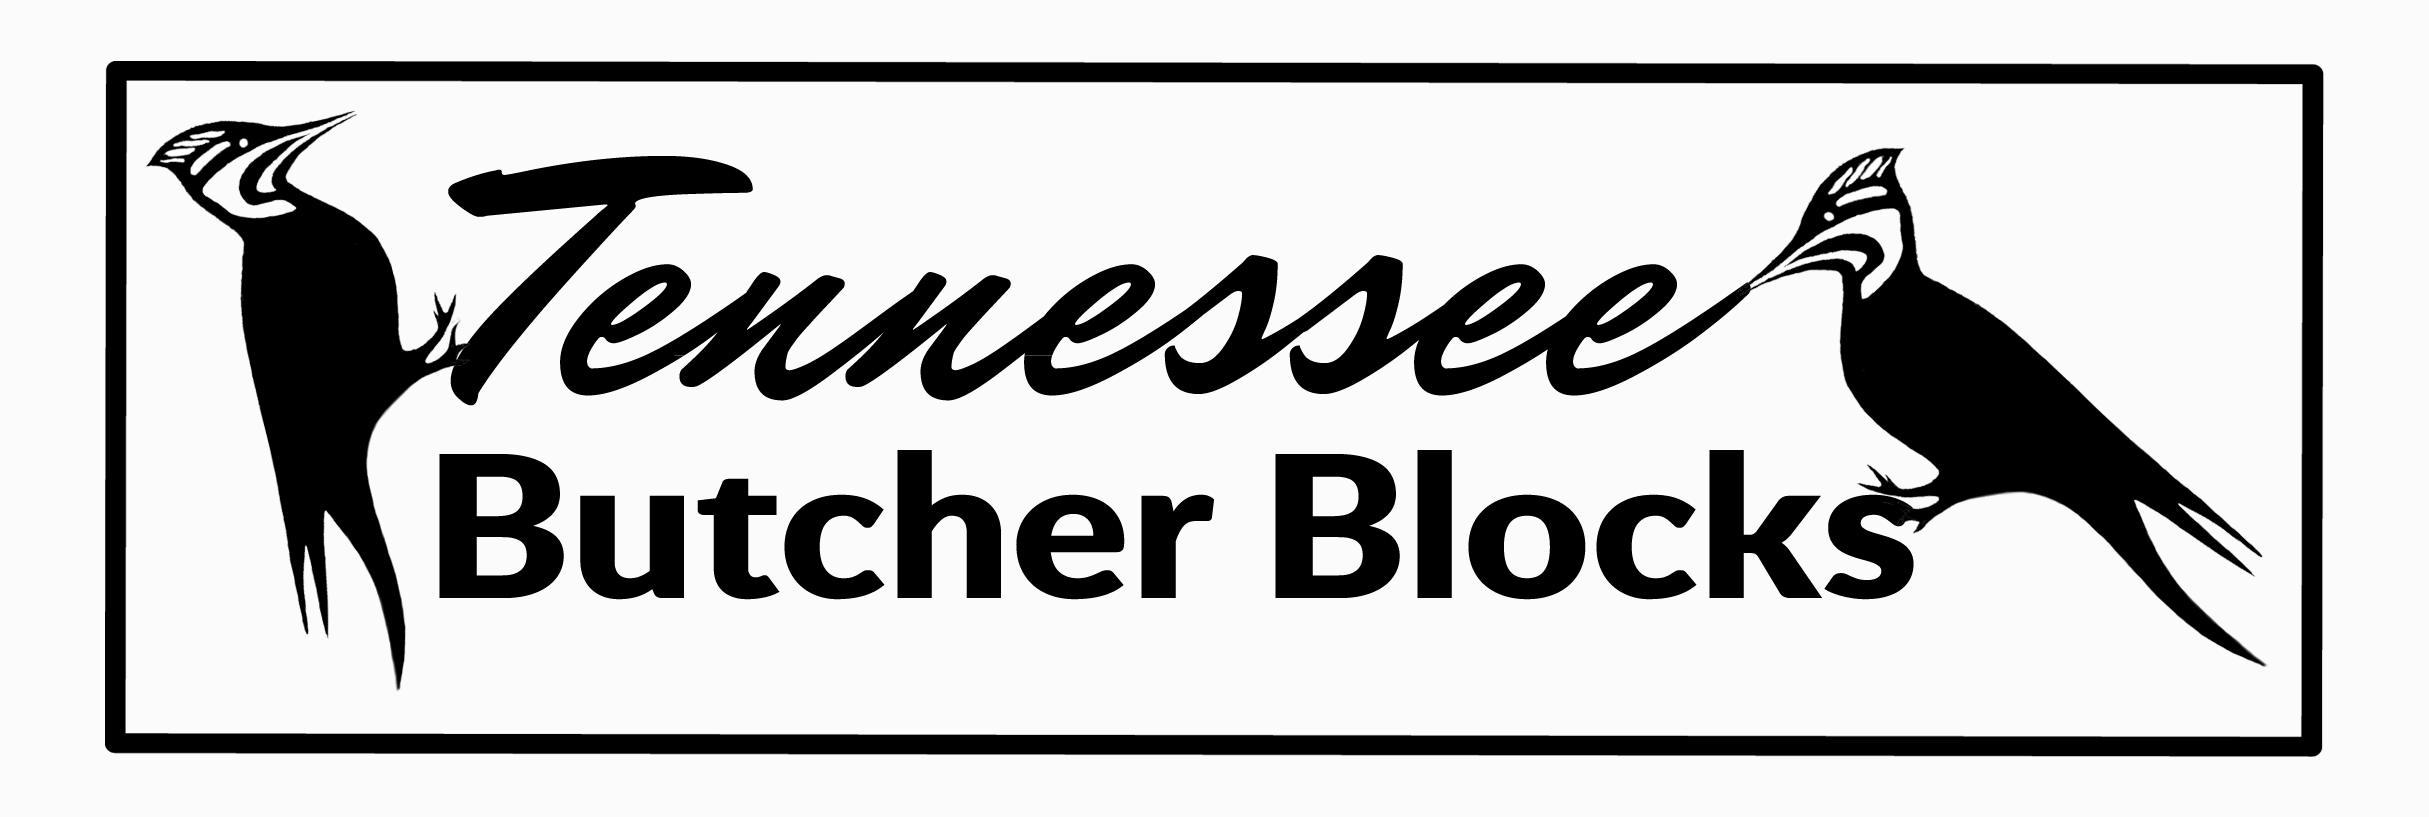 Tenessee Butch Blocks and Cutting Boards